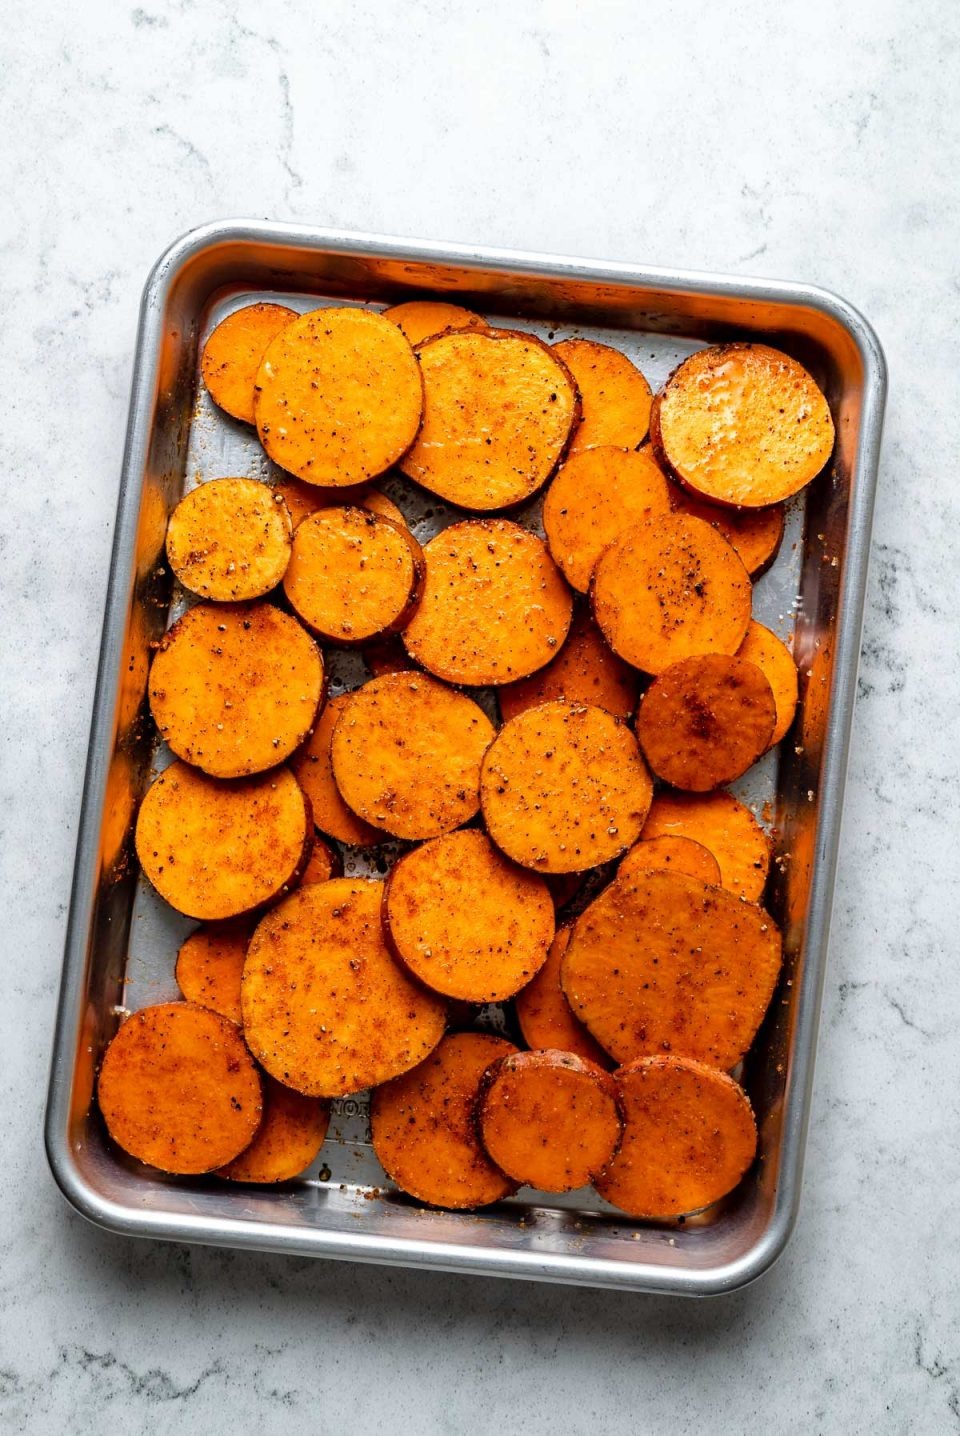 Multiple round slices of fresh & uncooked sweet potato seasoned with avocado oil, kosher salt, & ground black pepper lie on an aluminum baking sheet. The baking sheet sits on top of a white & gray marble surface.